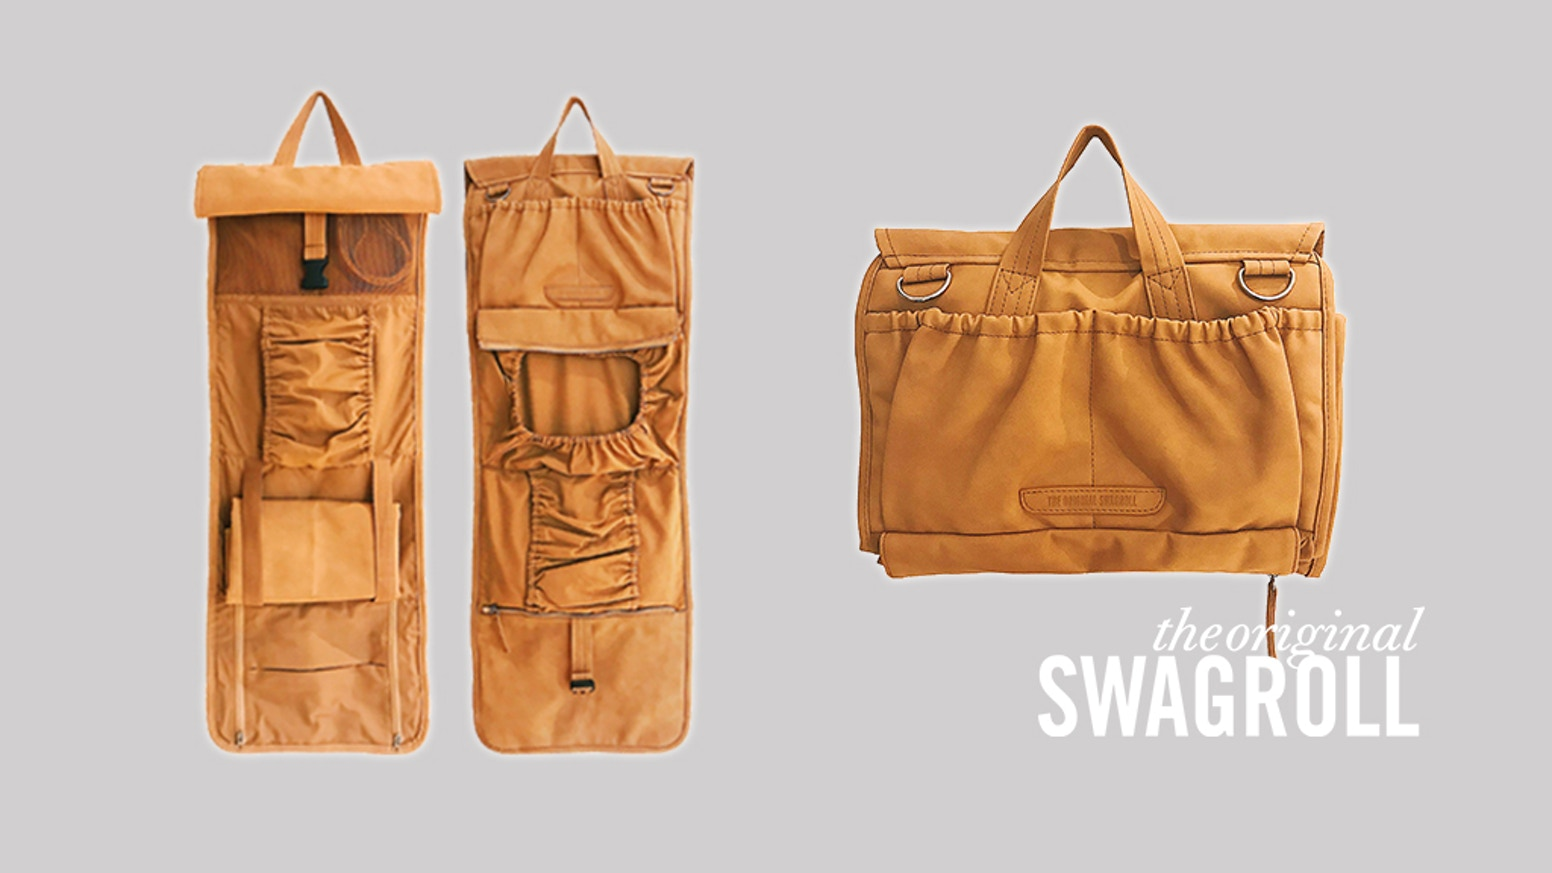 The diaper bags and wallets have all been fulfilled. But, it's not too late!Please head to www.theoriginalswagroll.com to get yours. Follow us on Instagram @theoriginalswagroll for the latest news!